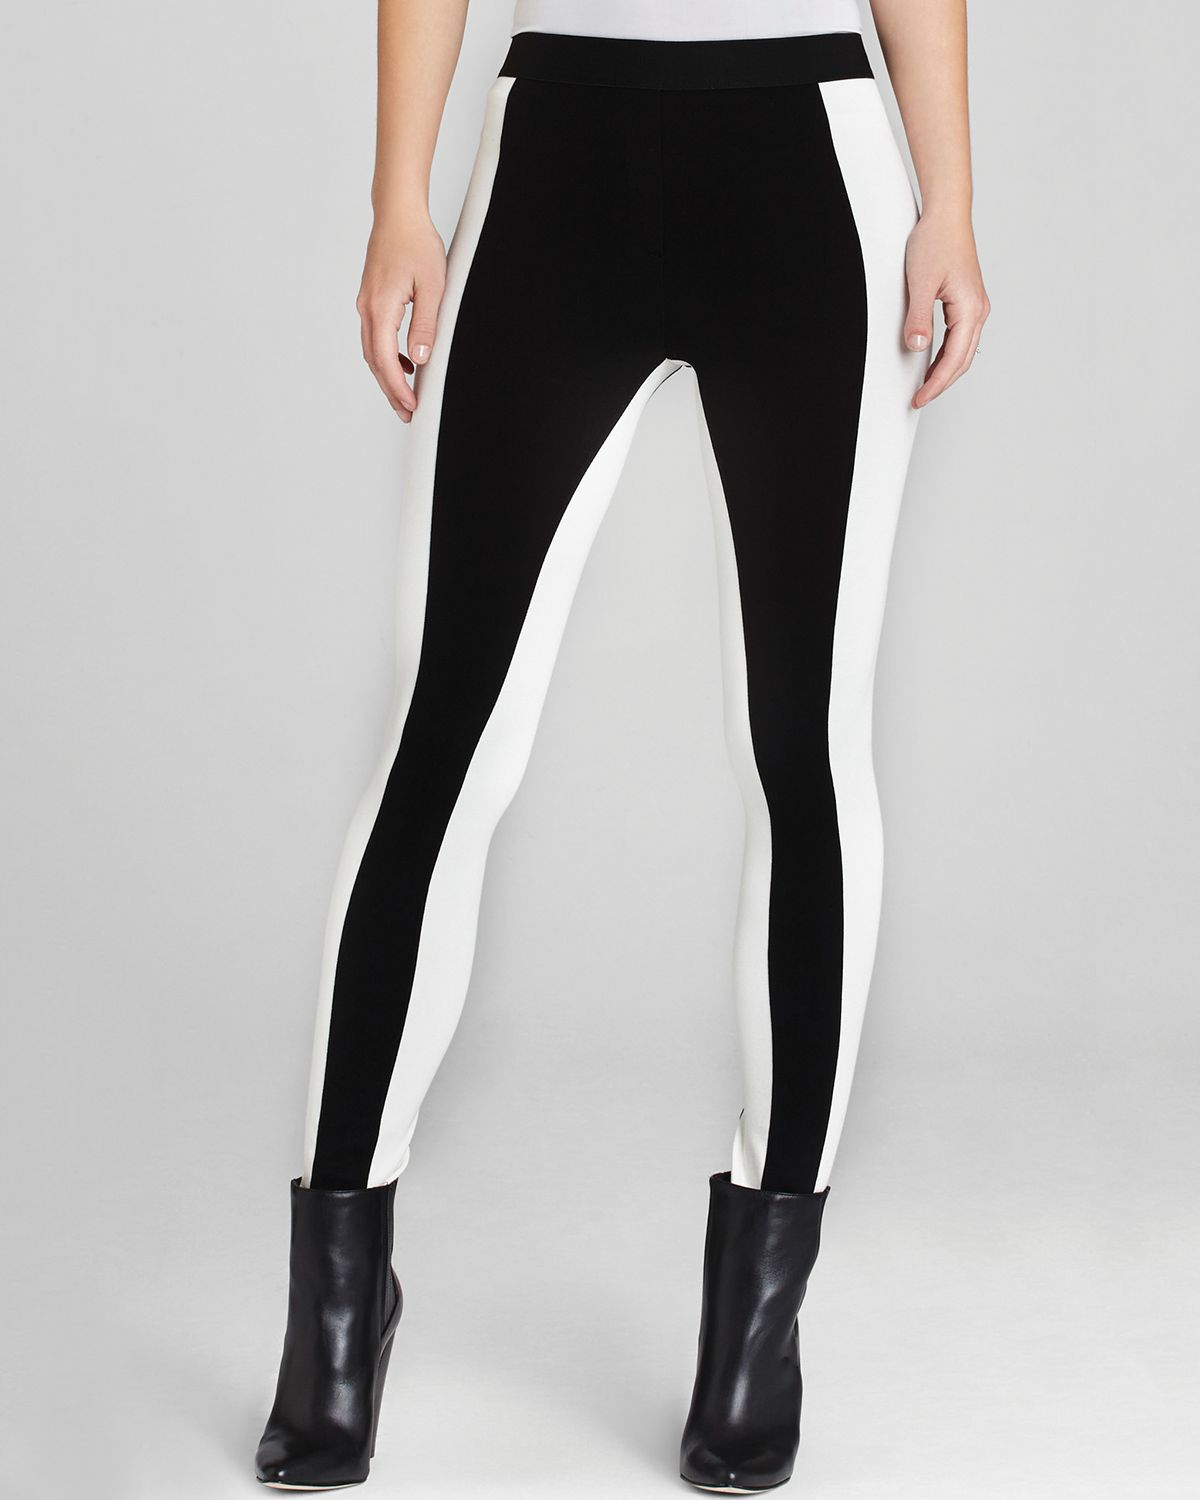 Bcbgmaxazria Leggings - Sasha Color Block in Black | Lyst